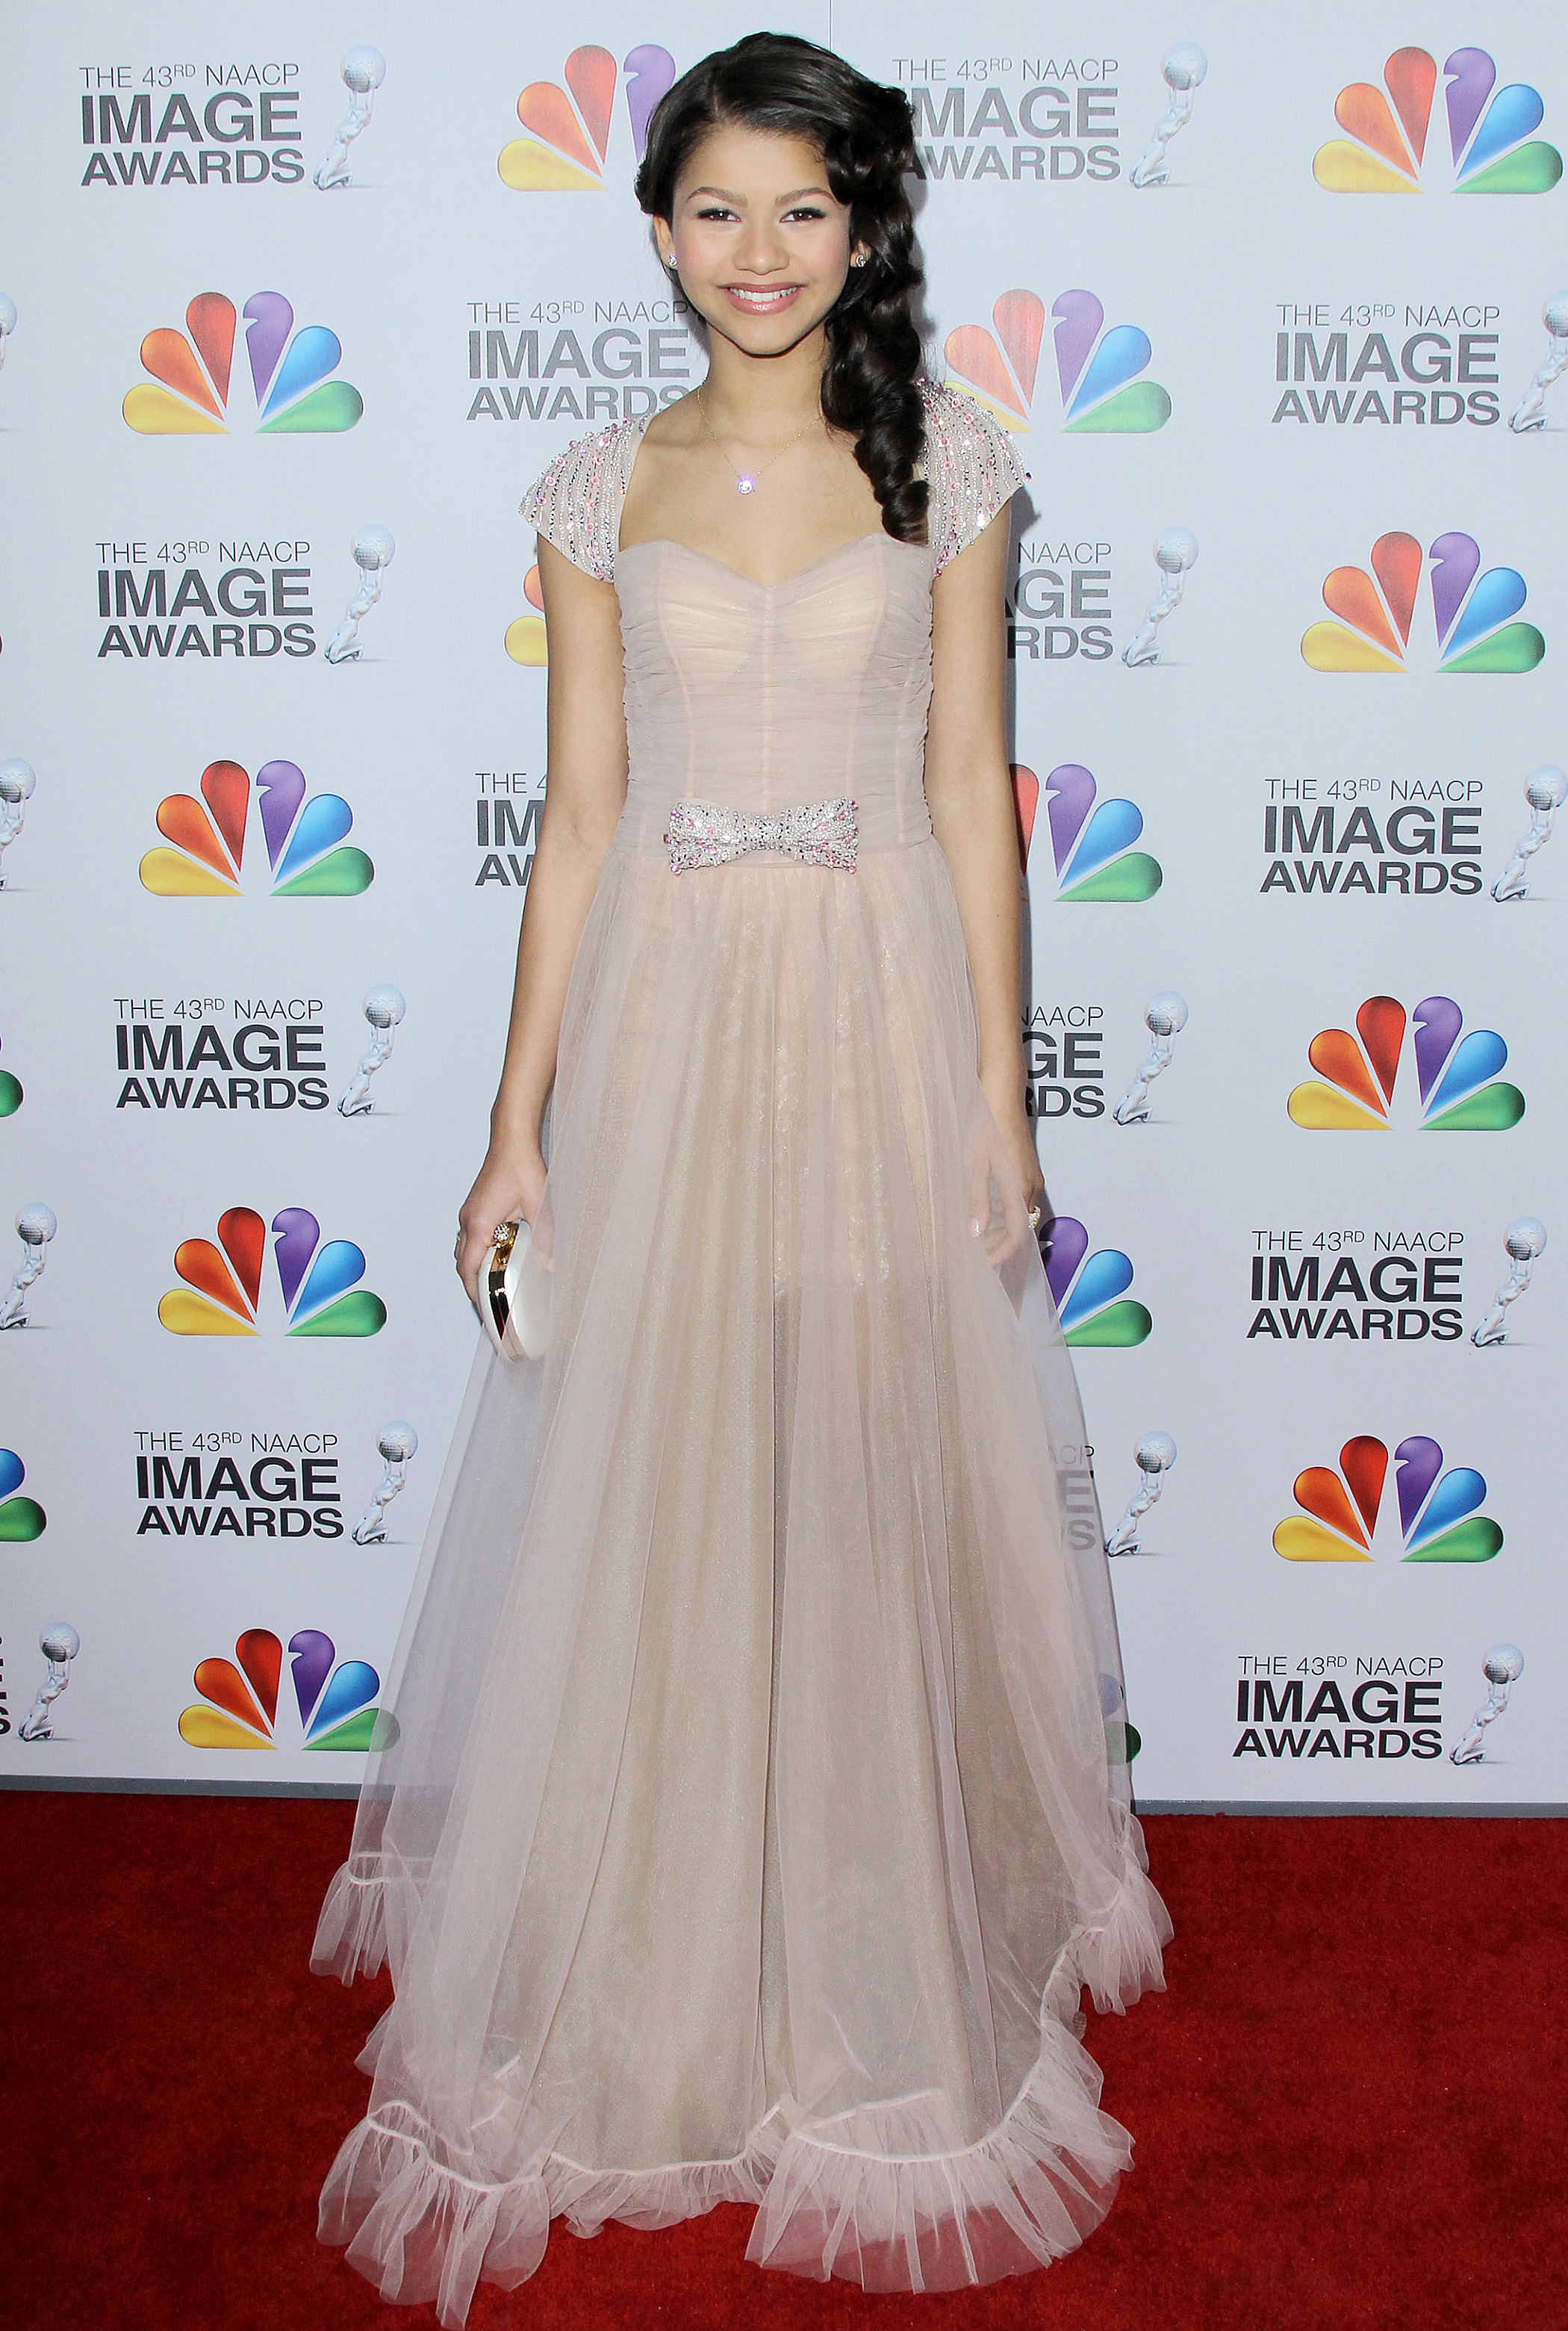 Zendaya Coleman at the 43rd Annual NAACP Image Awards at the Shrine Auditorium in Los Angeles on Feb. 12, 2012.